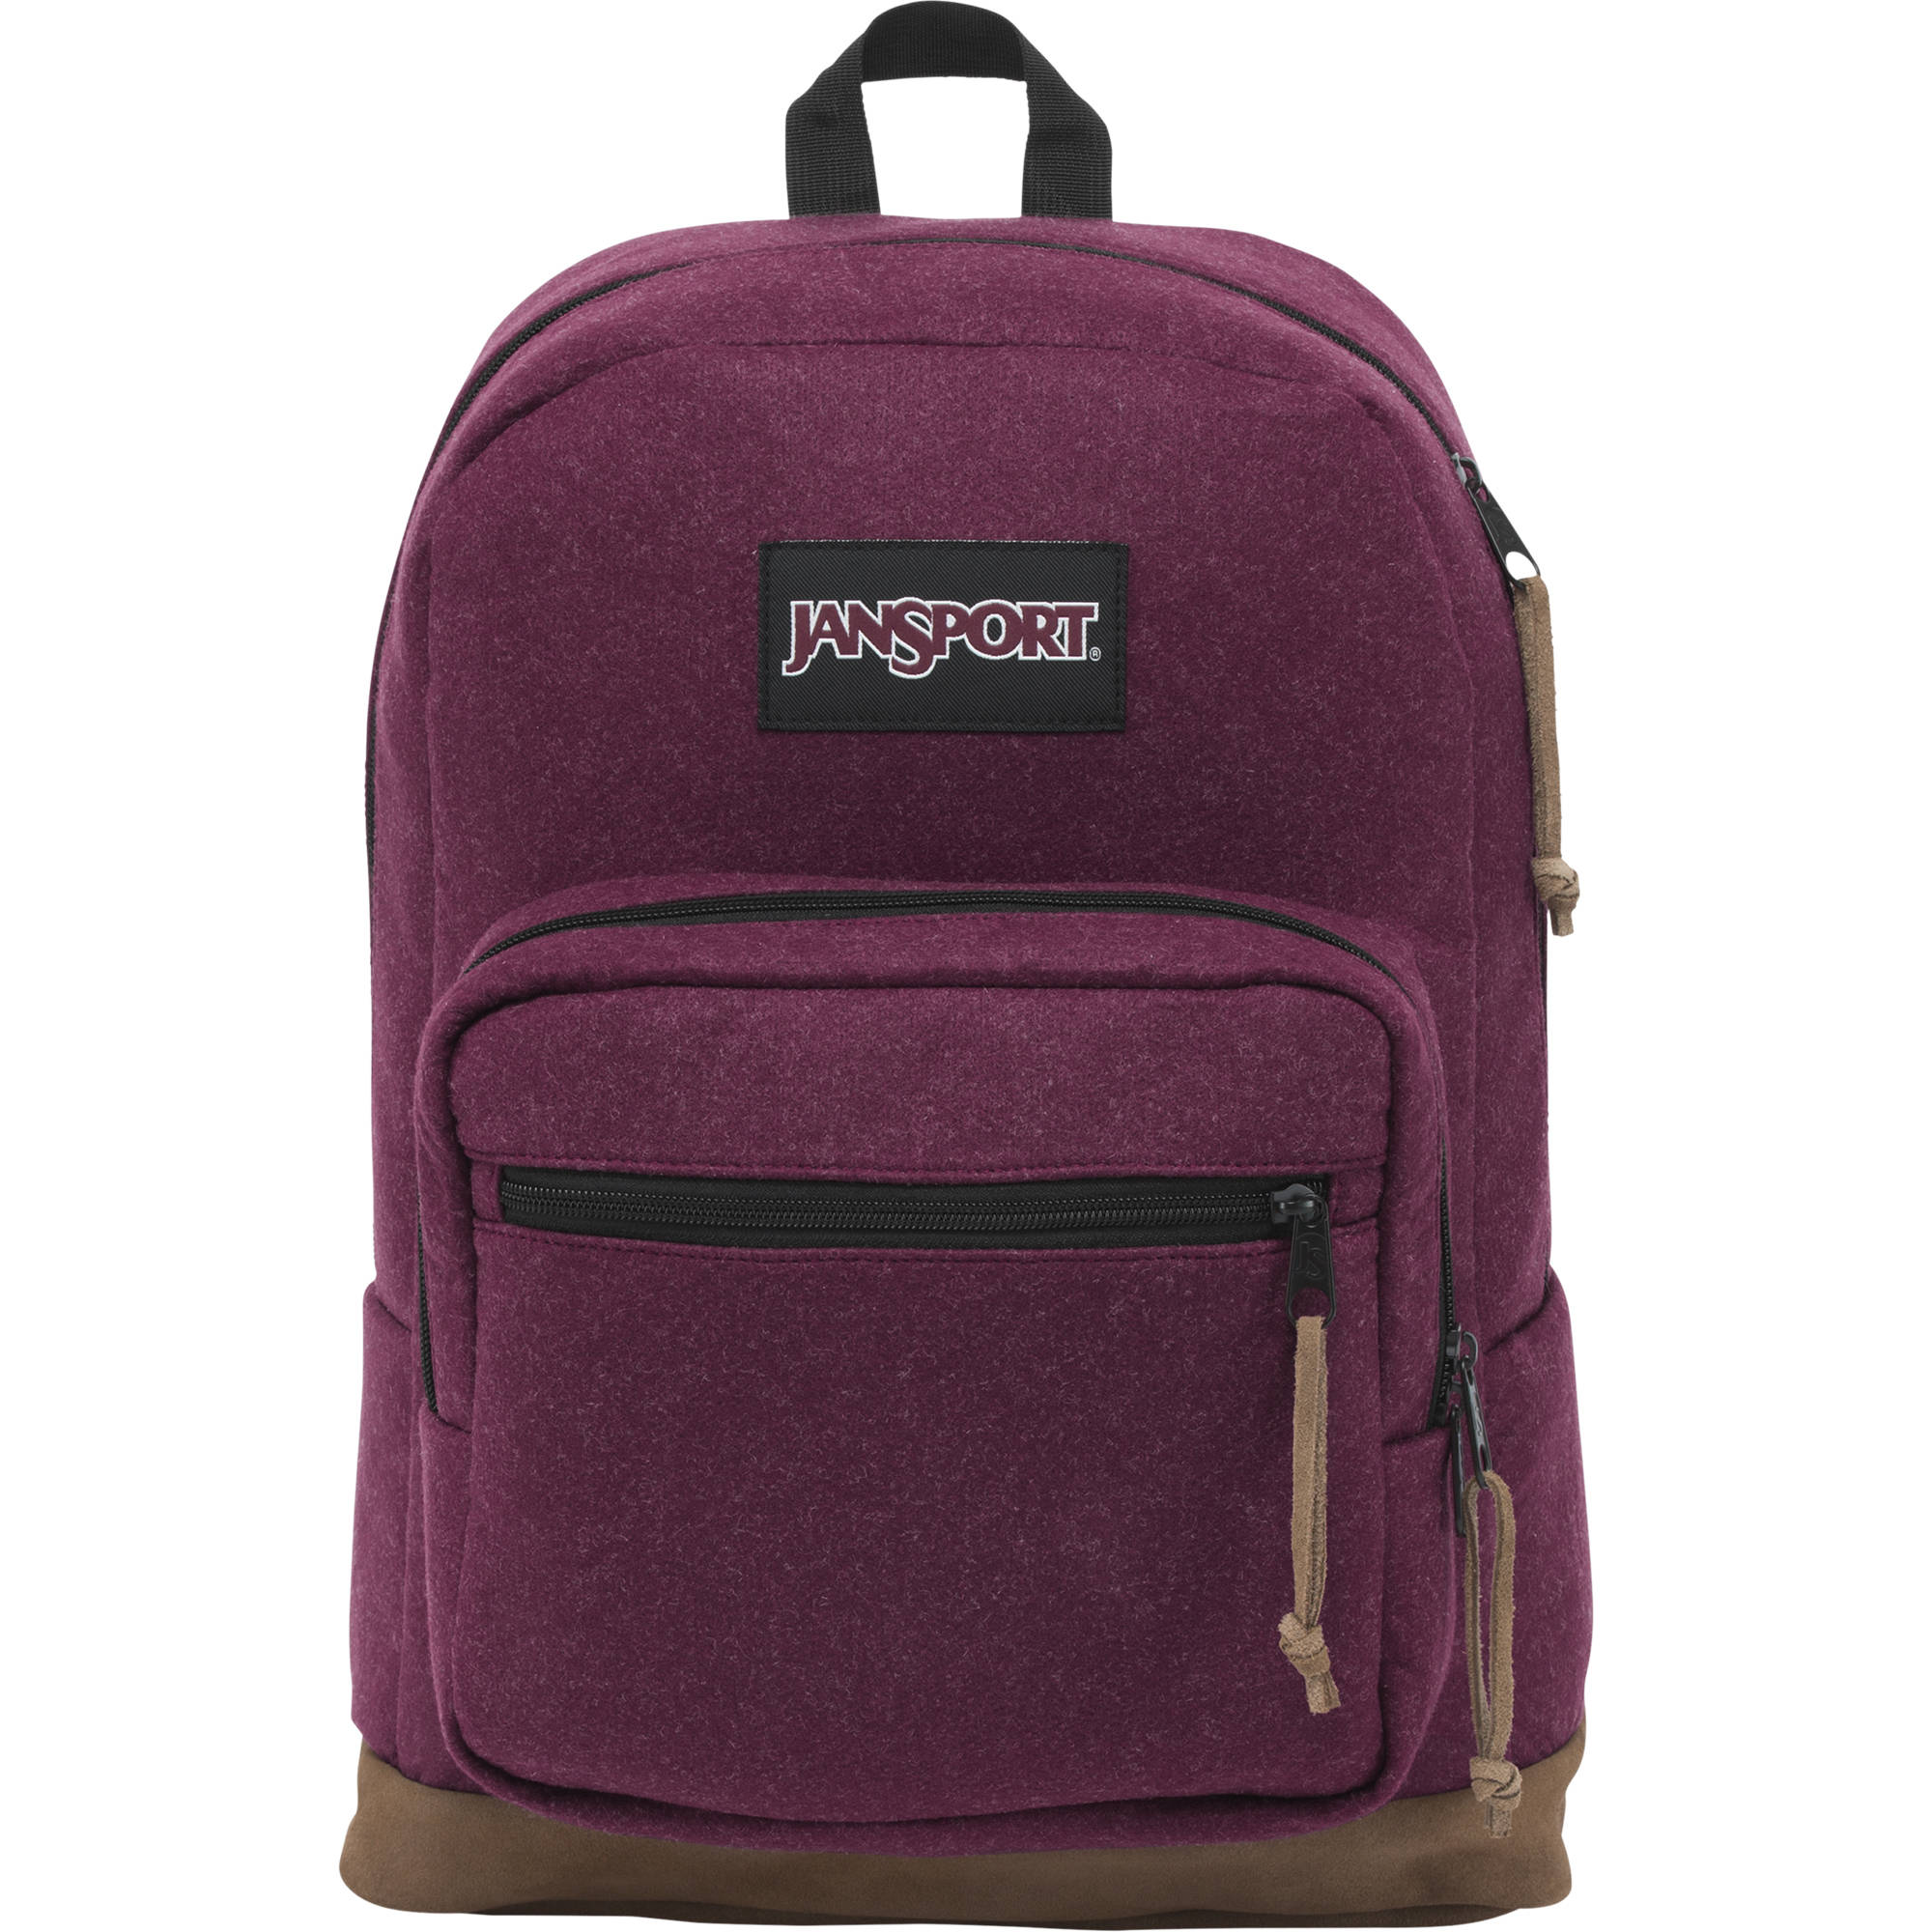 Jansport Backpack Maroon 86BF99g0